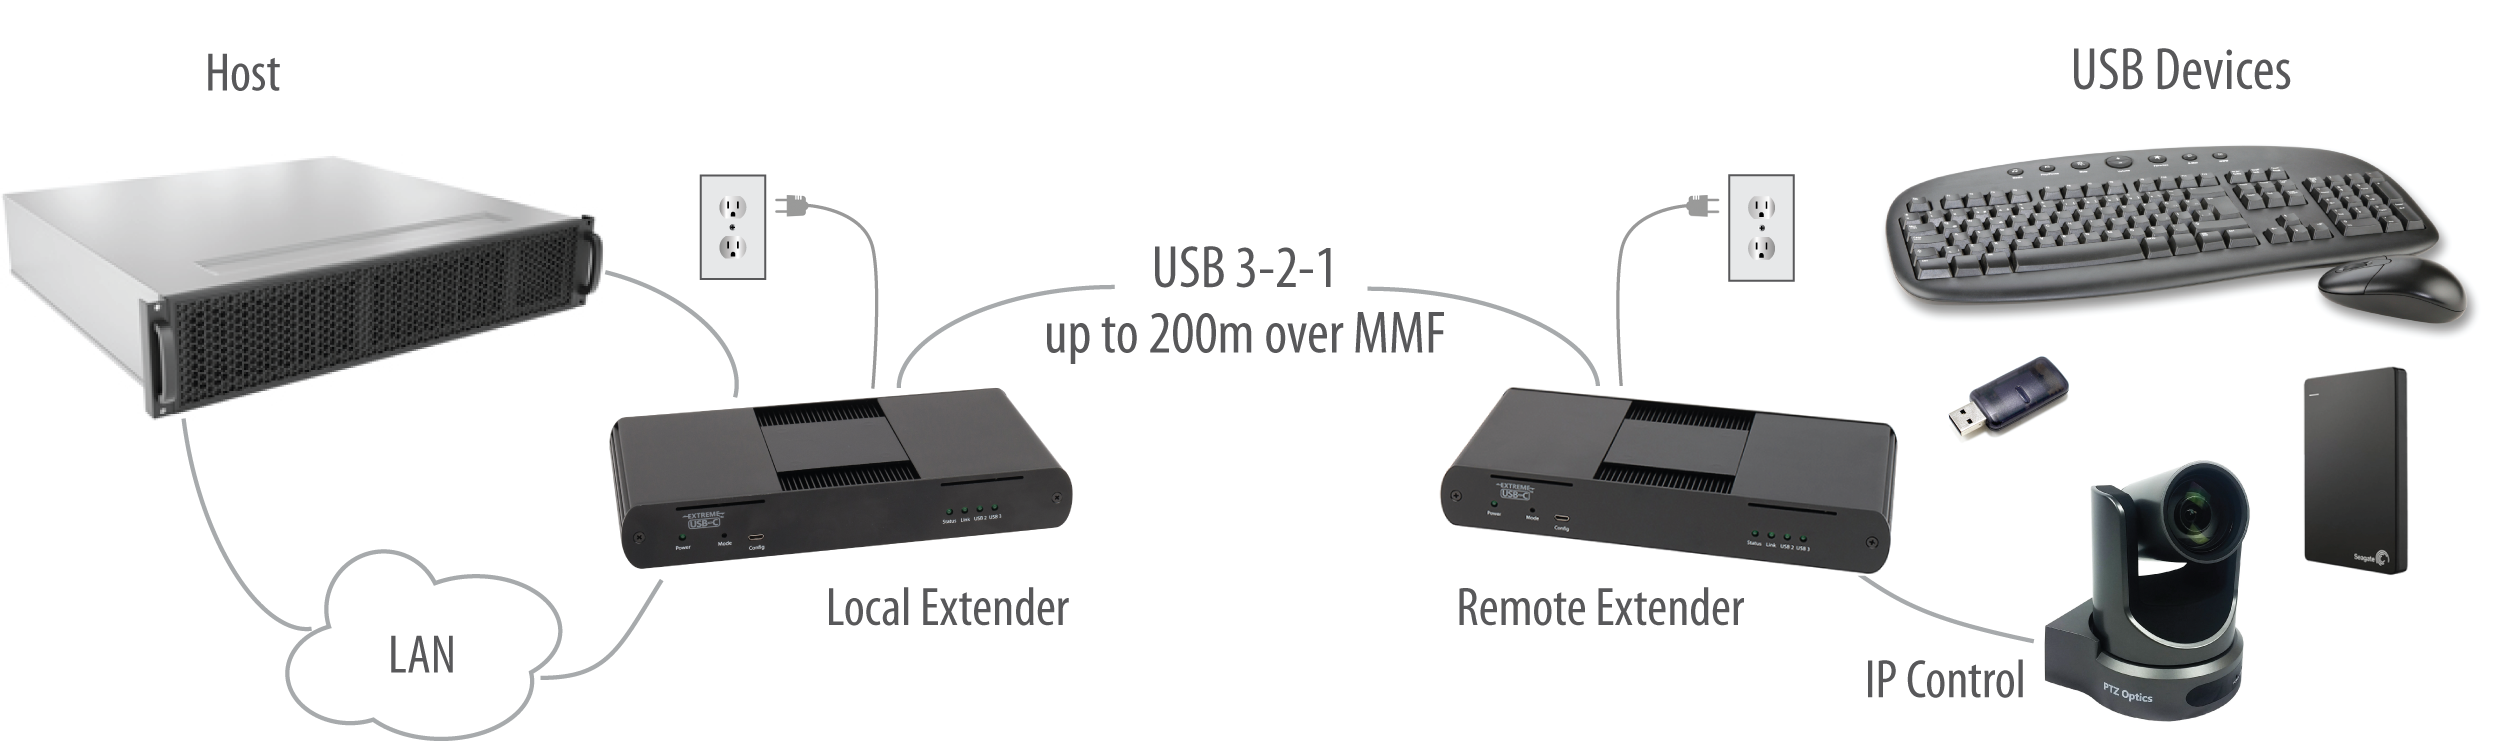 USB 3-2-1 Raven 3124 200m MMF Fiber Point-to-Point Extender System Application Diagram